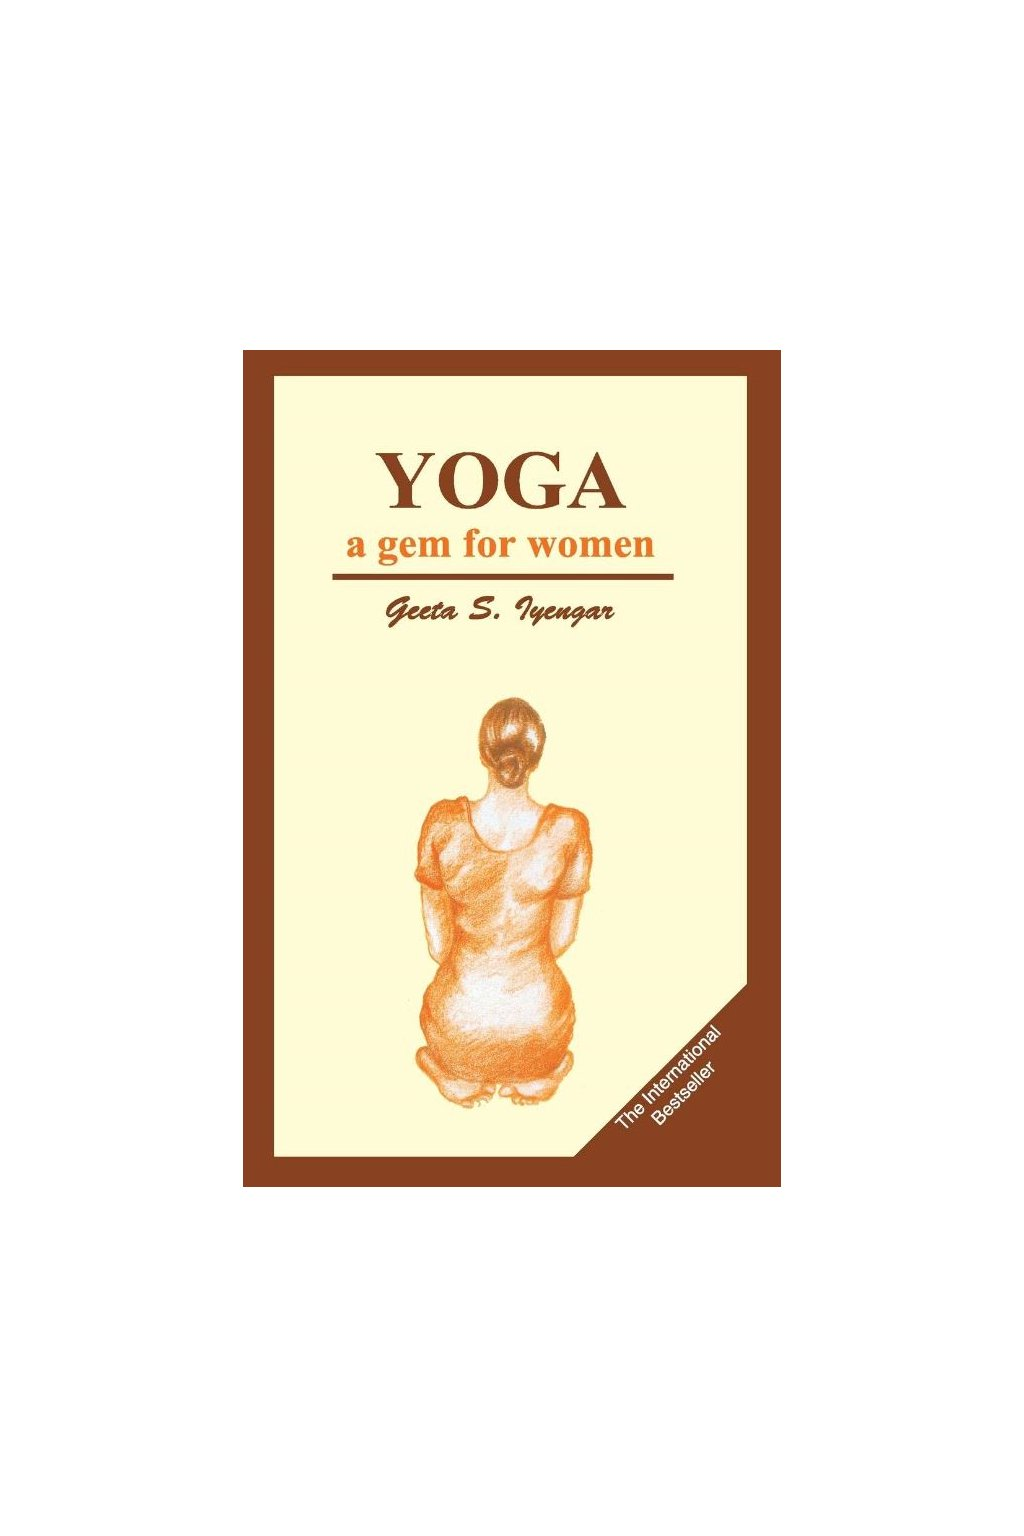 Iyengar_Yoga_Yoga_A_gem_for_women